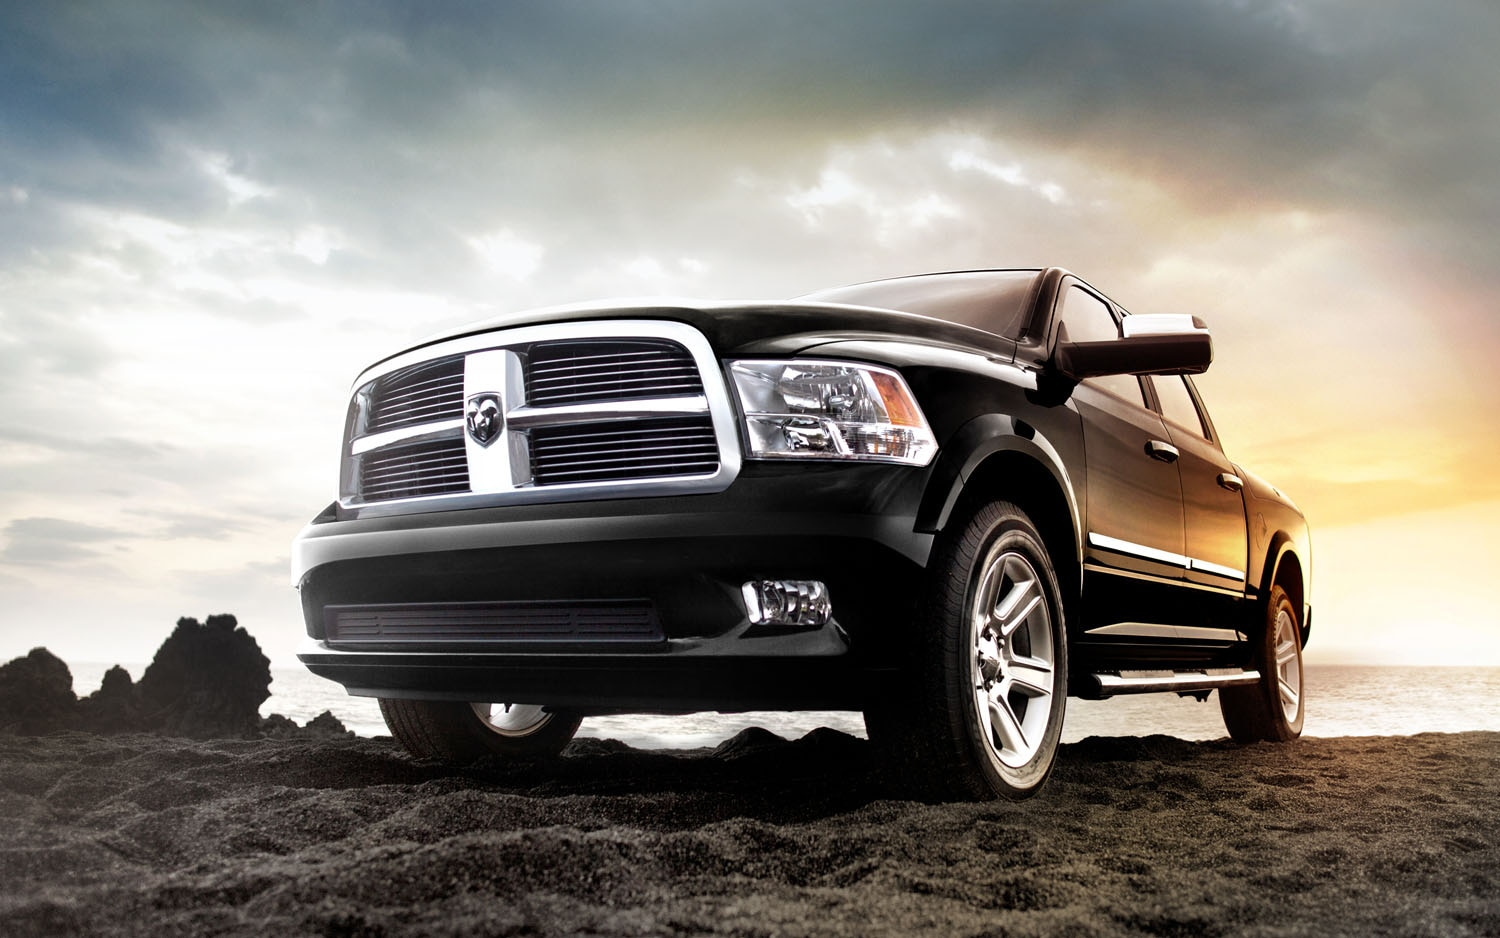 2012 Ram Laramie Limited Front Three Quarter1